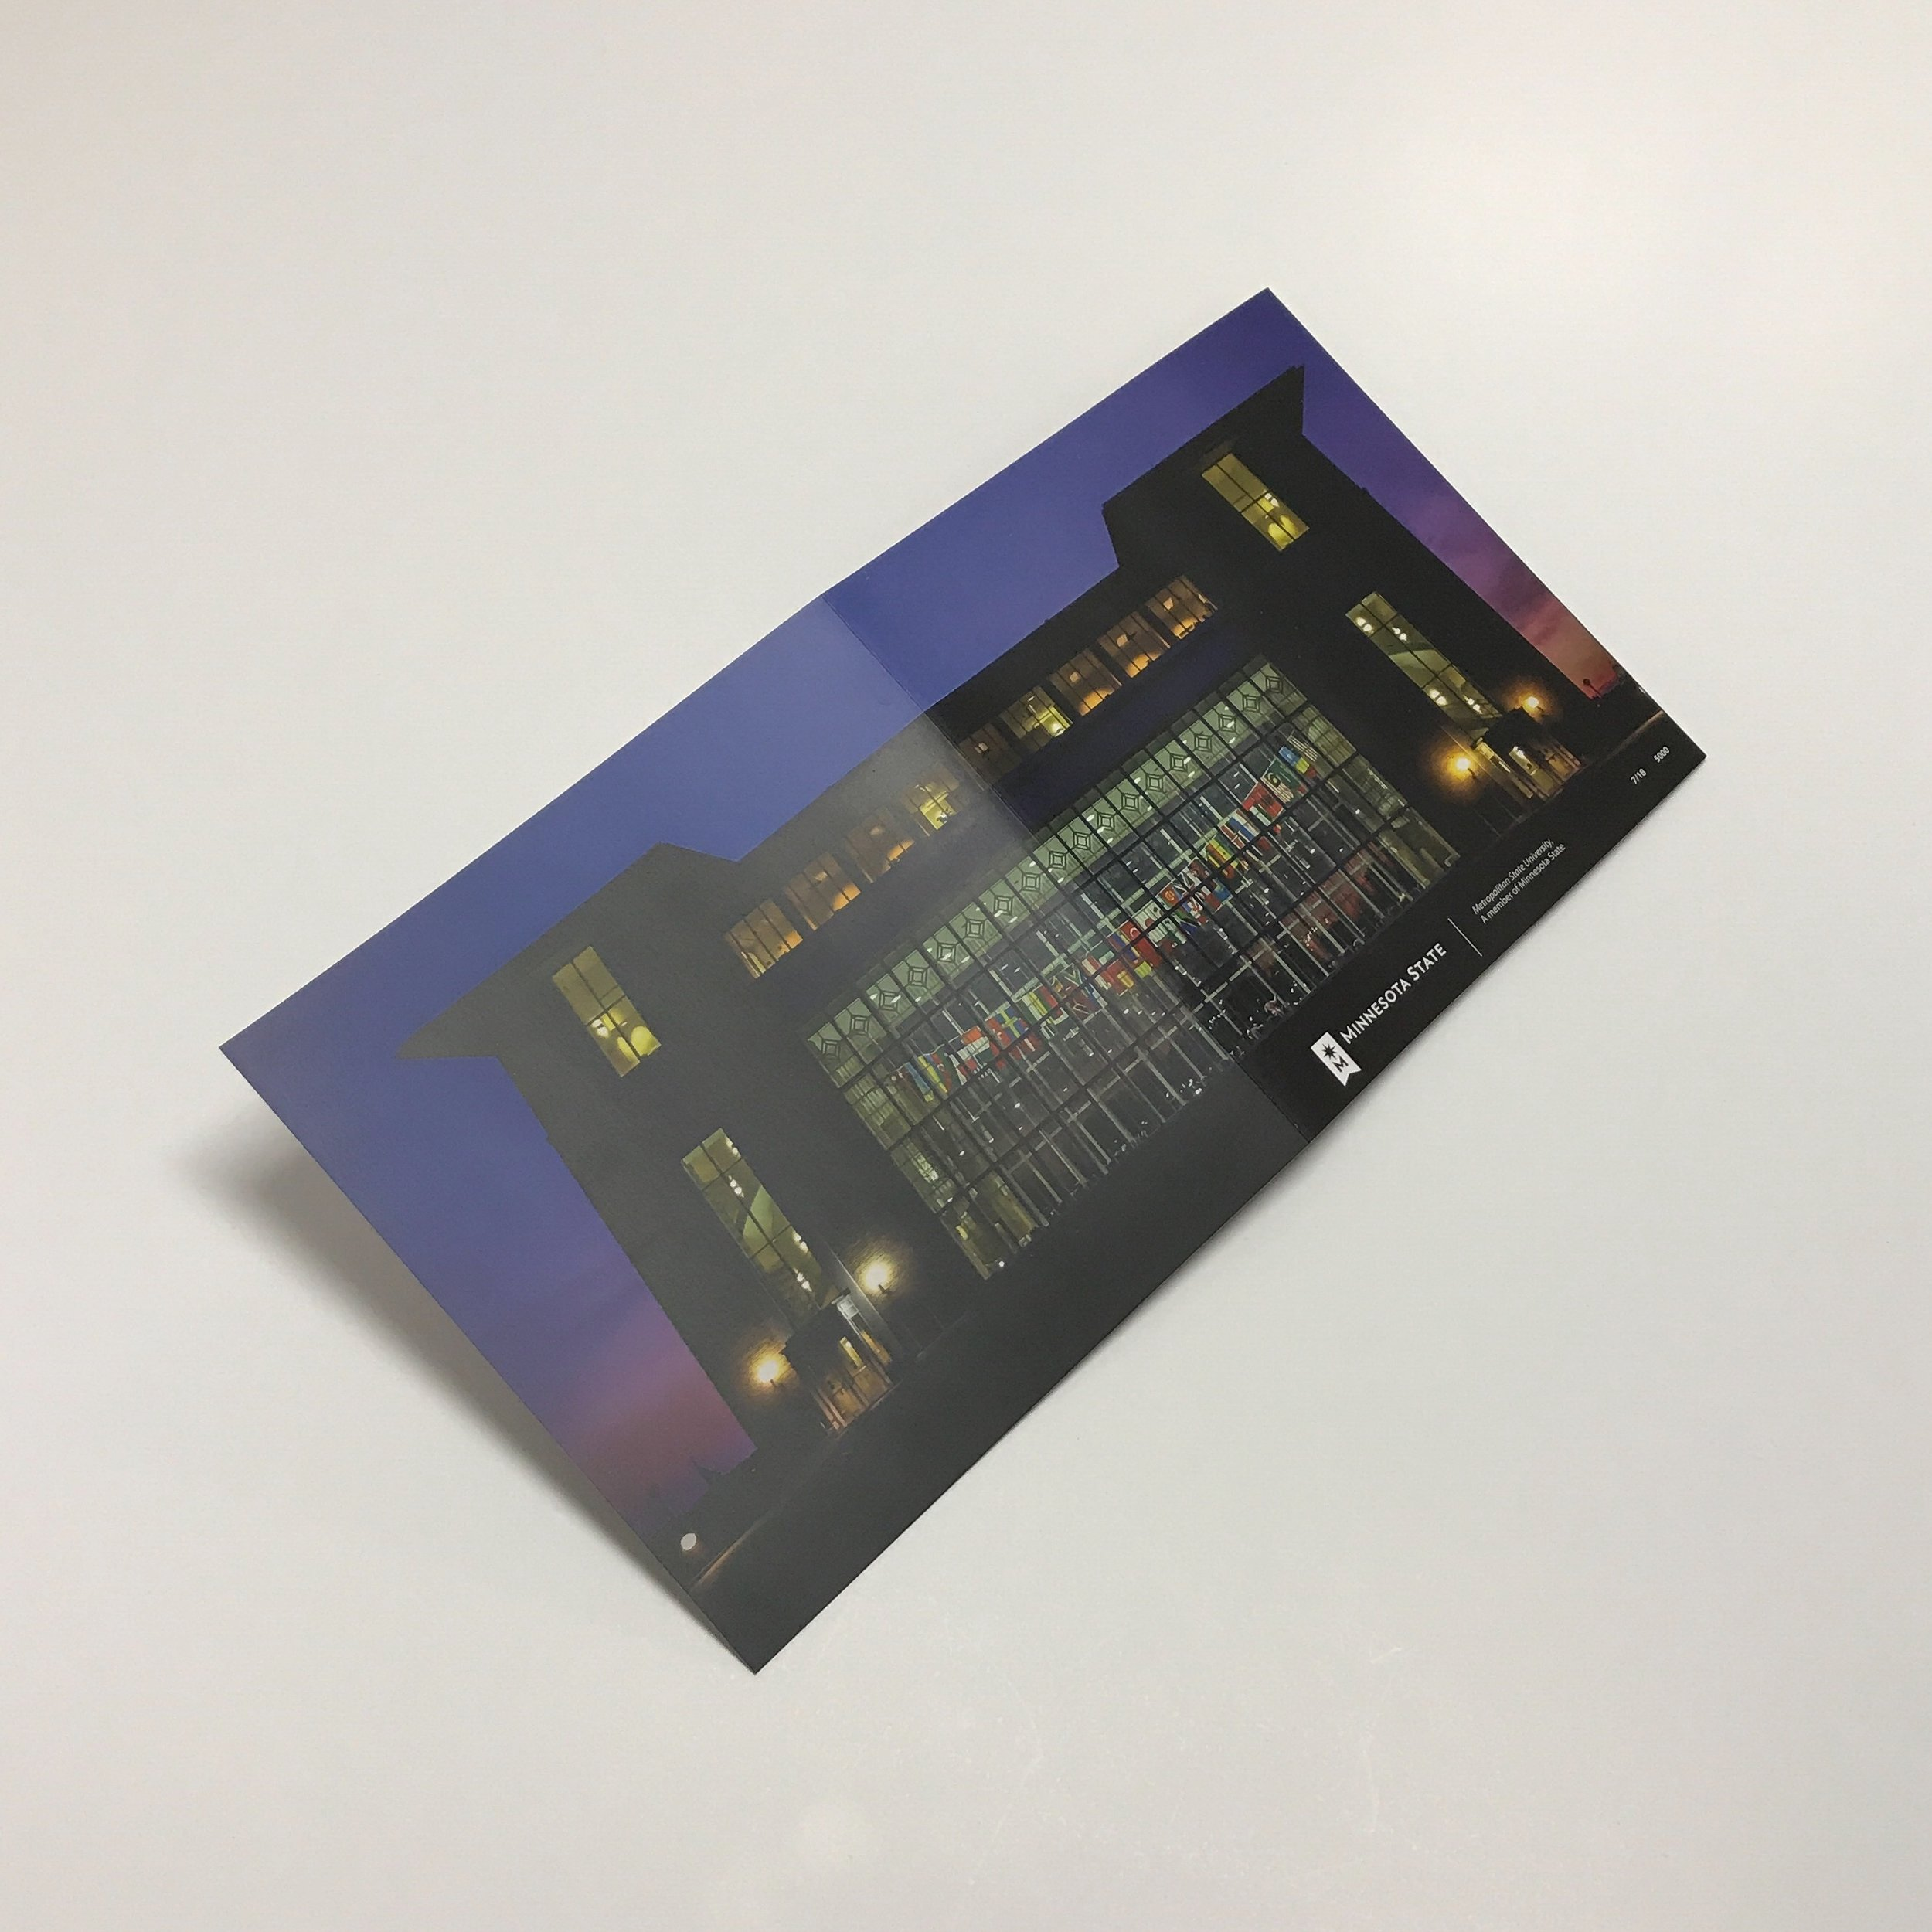 Higher education college booklet printed in Minneapolis by Anderberg Print